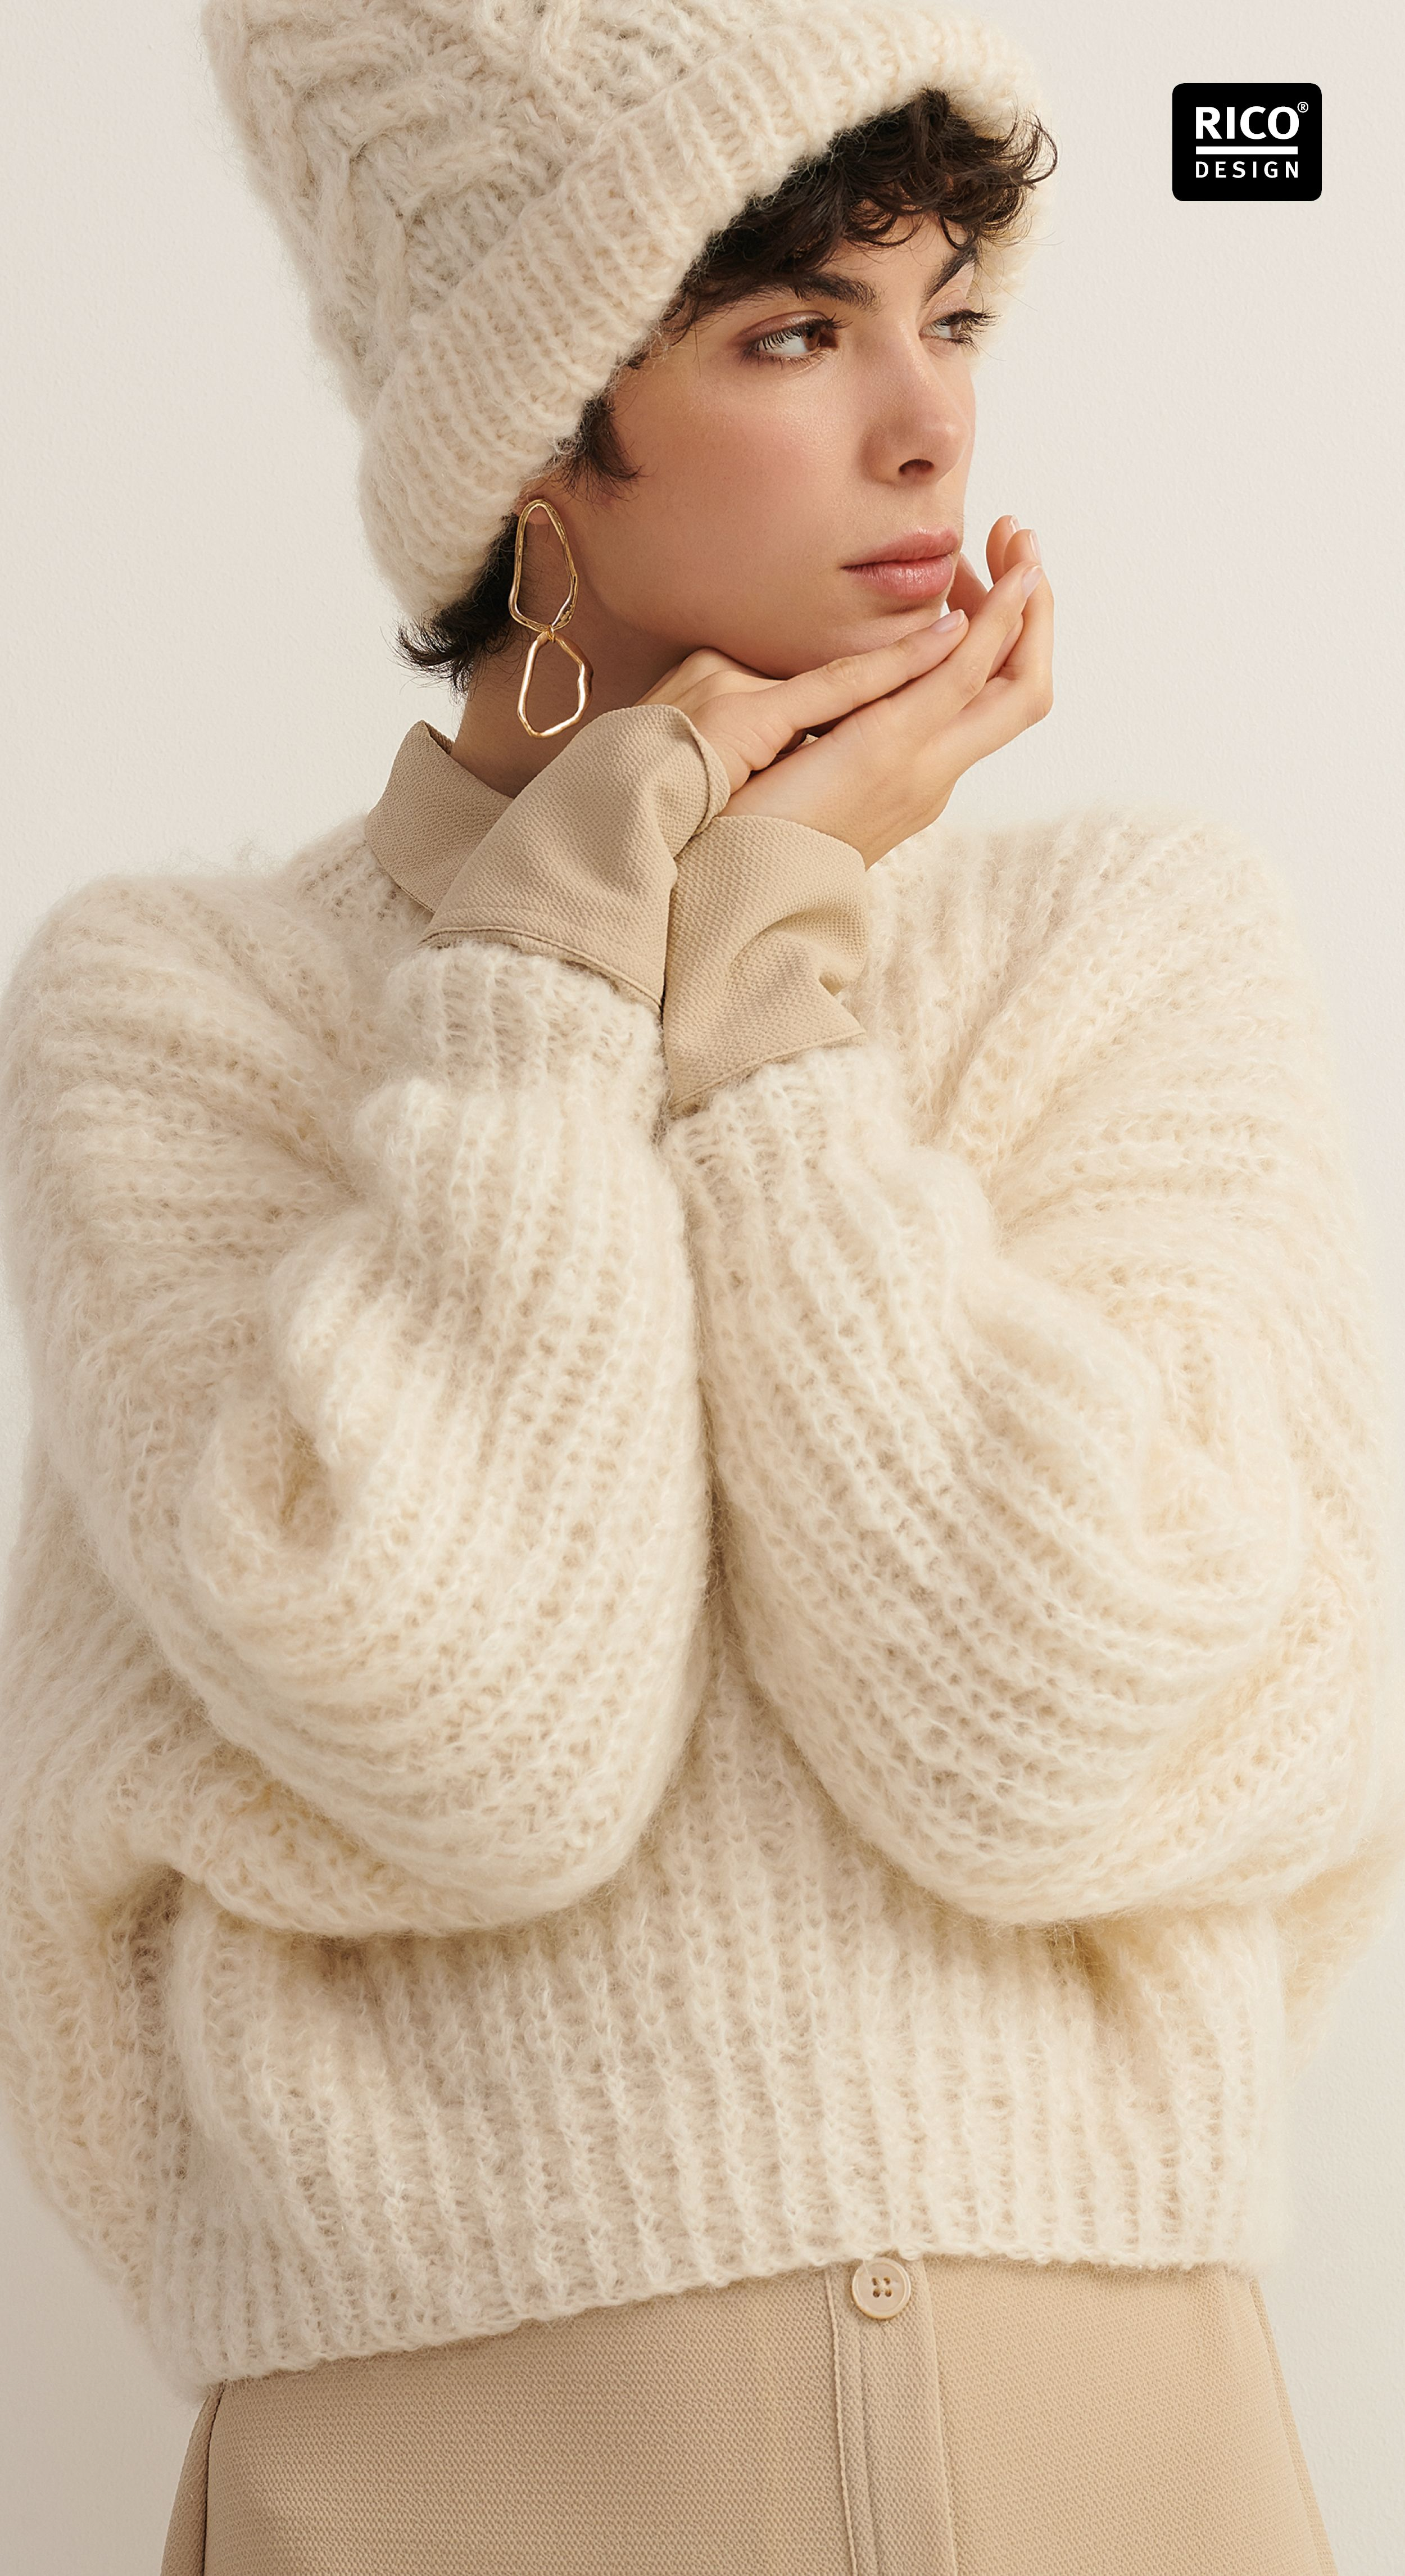 Photo of Knitting styles in autumn: knit fluffy sweaters yourself